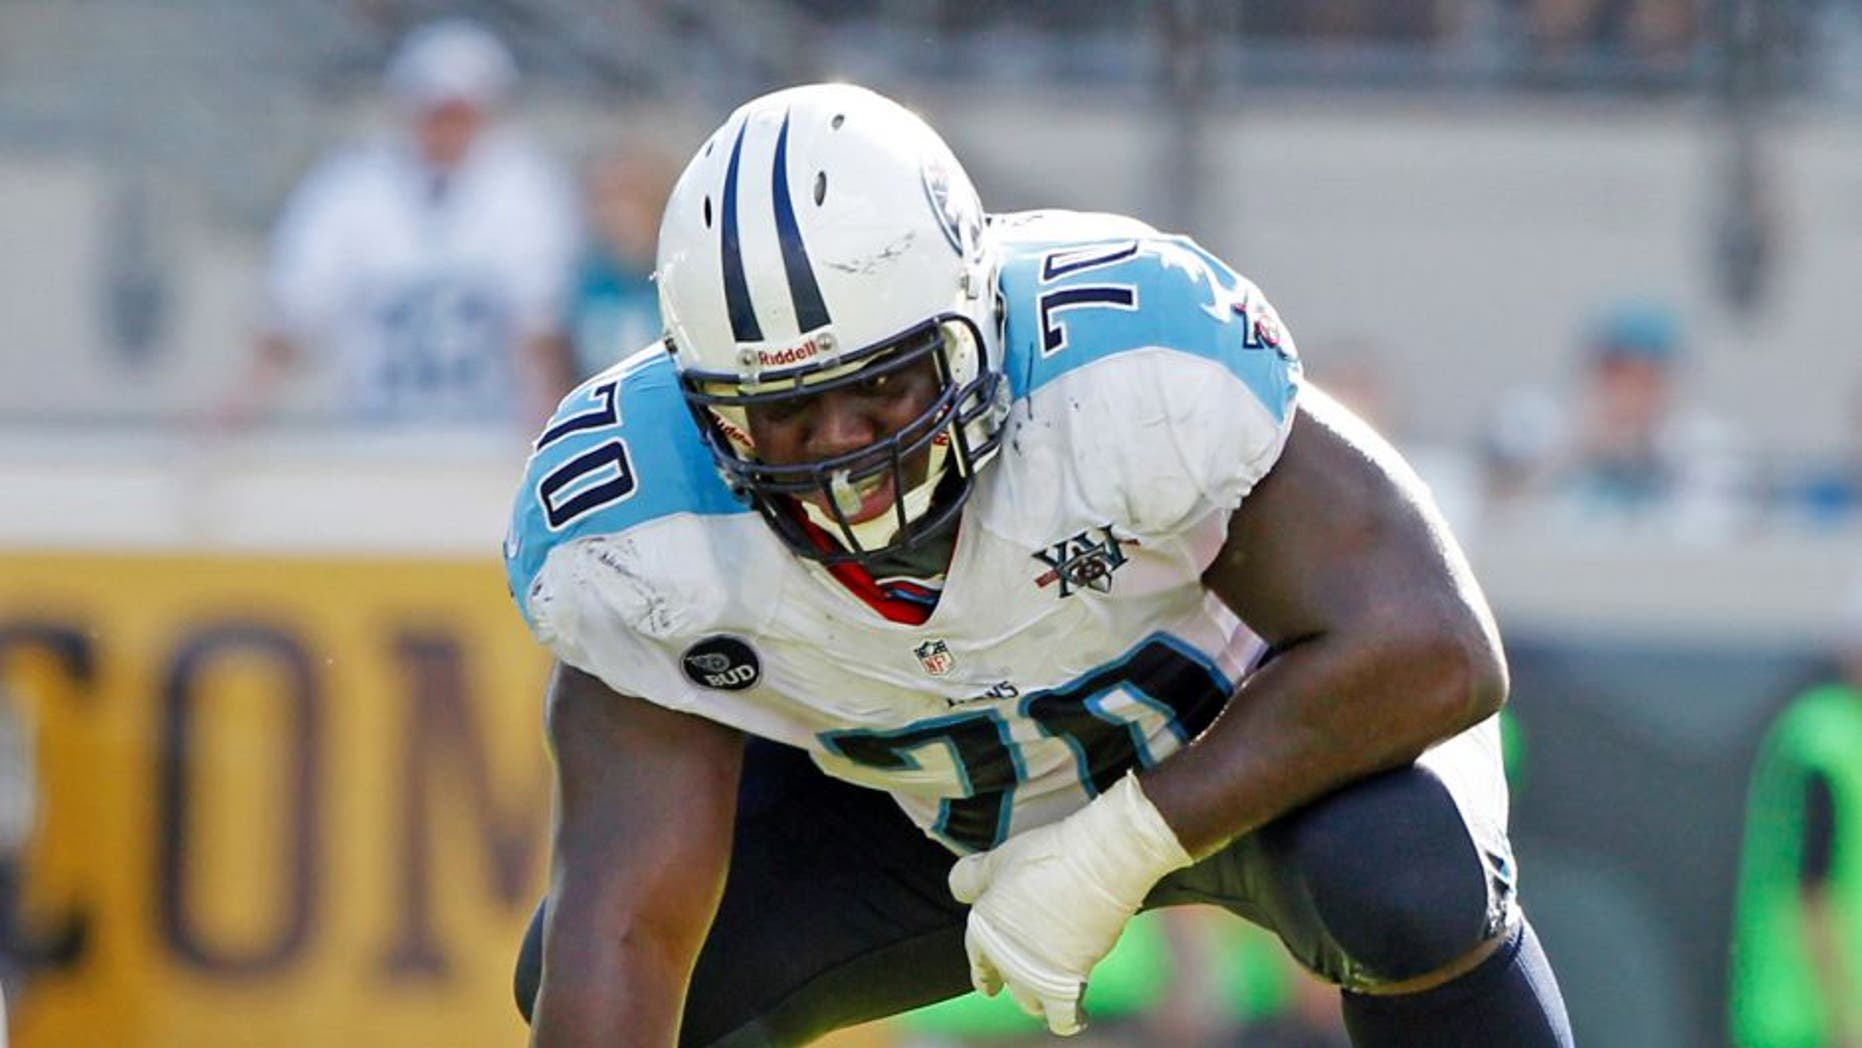 Dec 22, 2013; Jacksonville, FL, USA; Tennessee Titans offensive guard Chance Warmack (70) against the Jacksonville Jaguars during the first half at EverBank Field. Mandatory Credit: Kim Klement-USA TODAY Sports